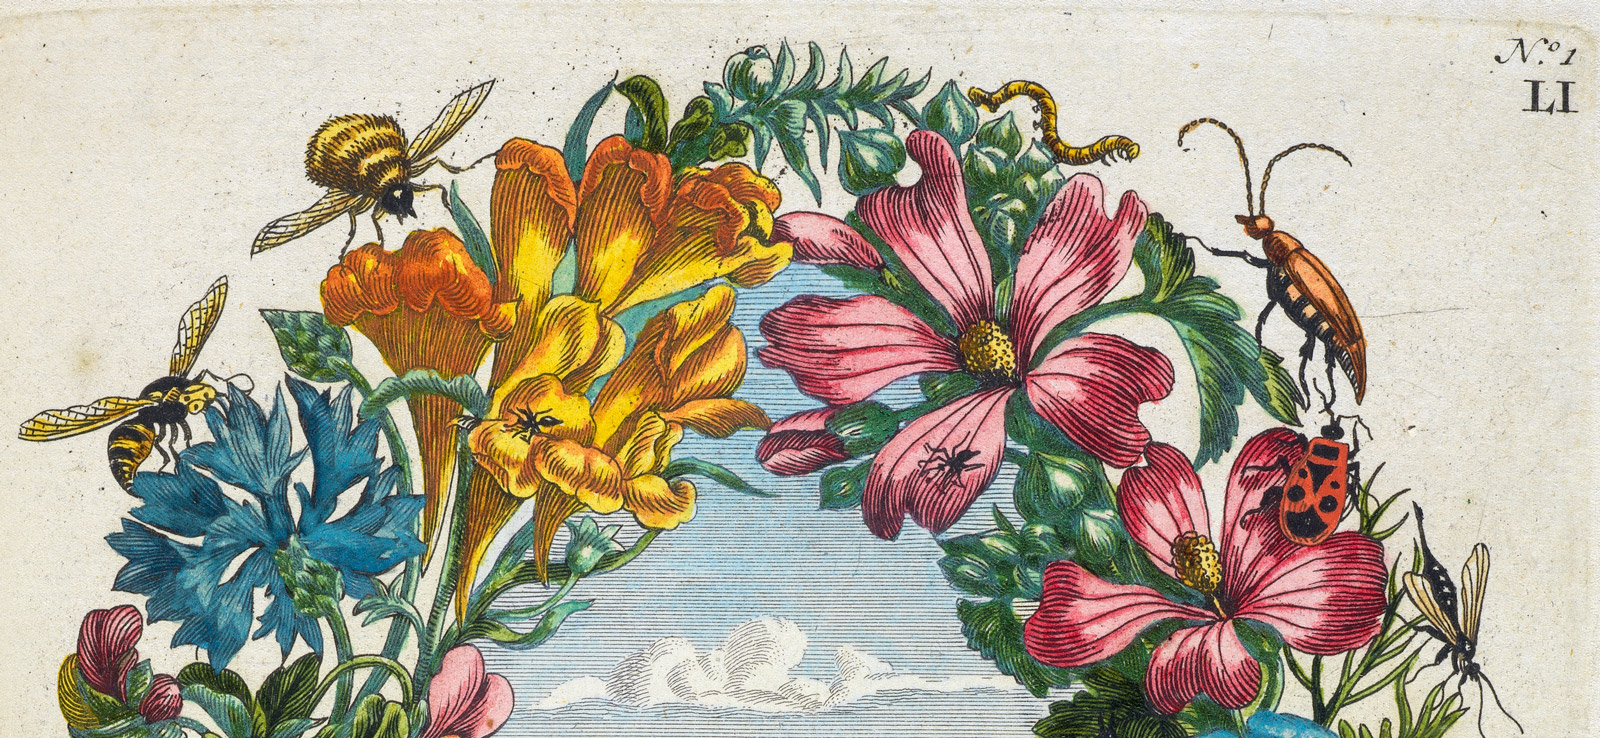 A detail of the top portion of a wreath of flowers with insects including bees and beetles.